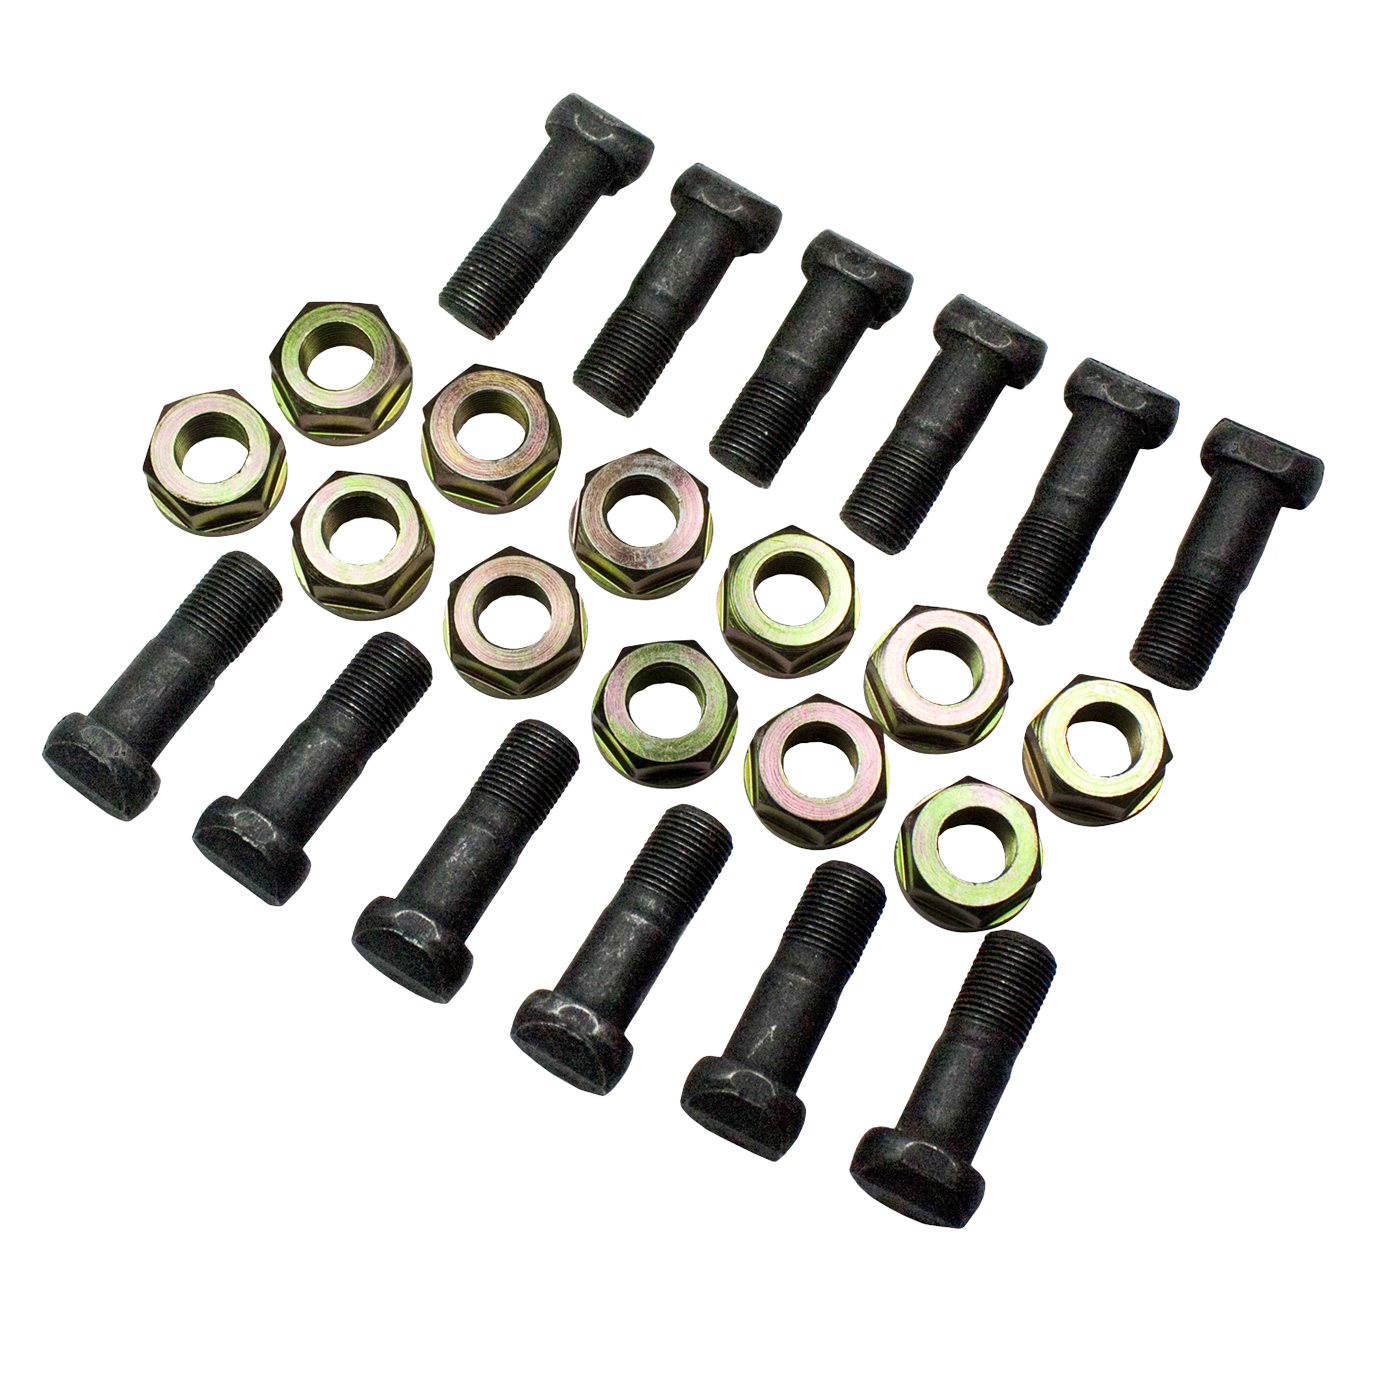 MK TLC-RGBOLT - Ring Gear Bolt kit for Toyota Landcruiser